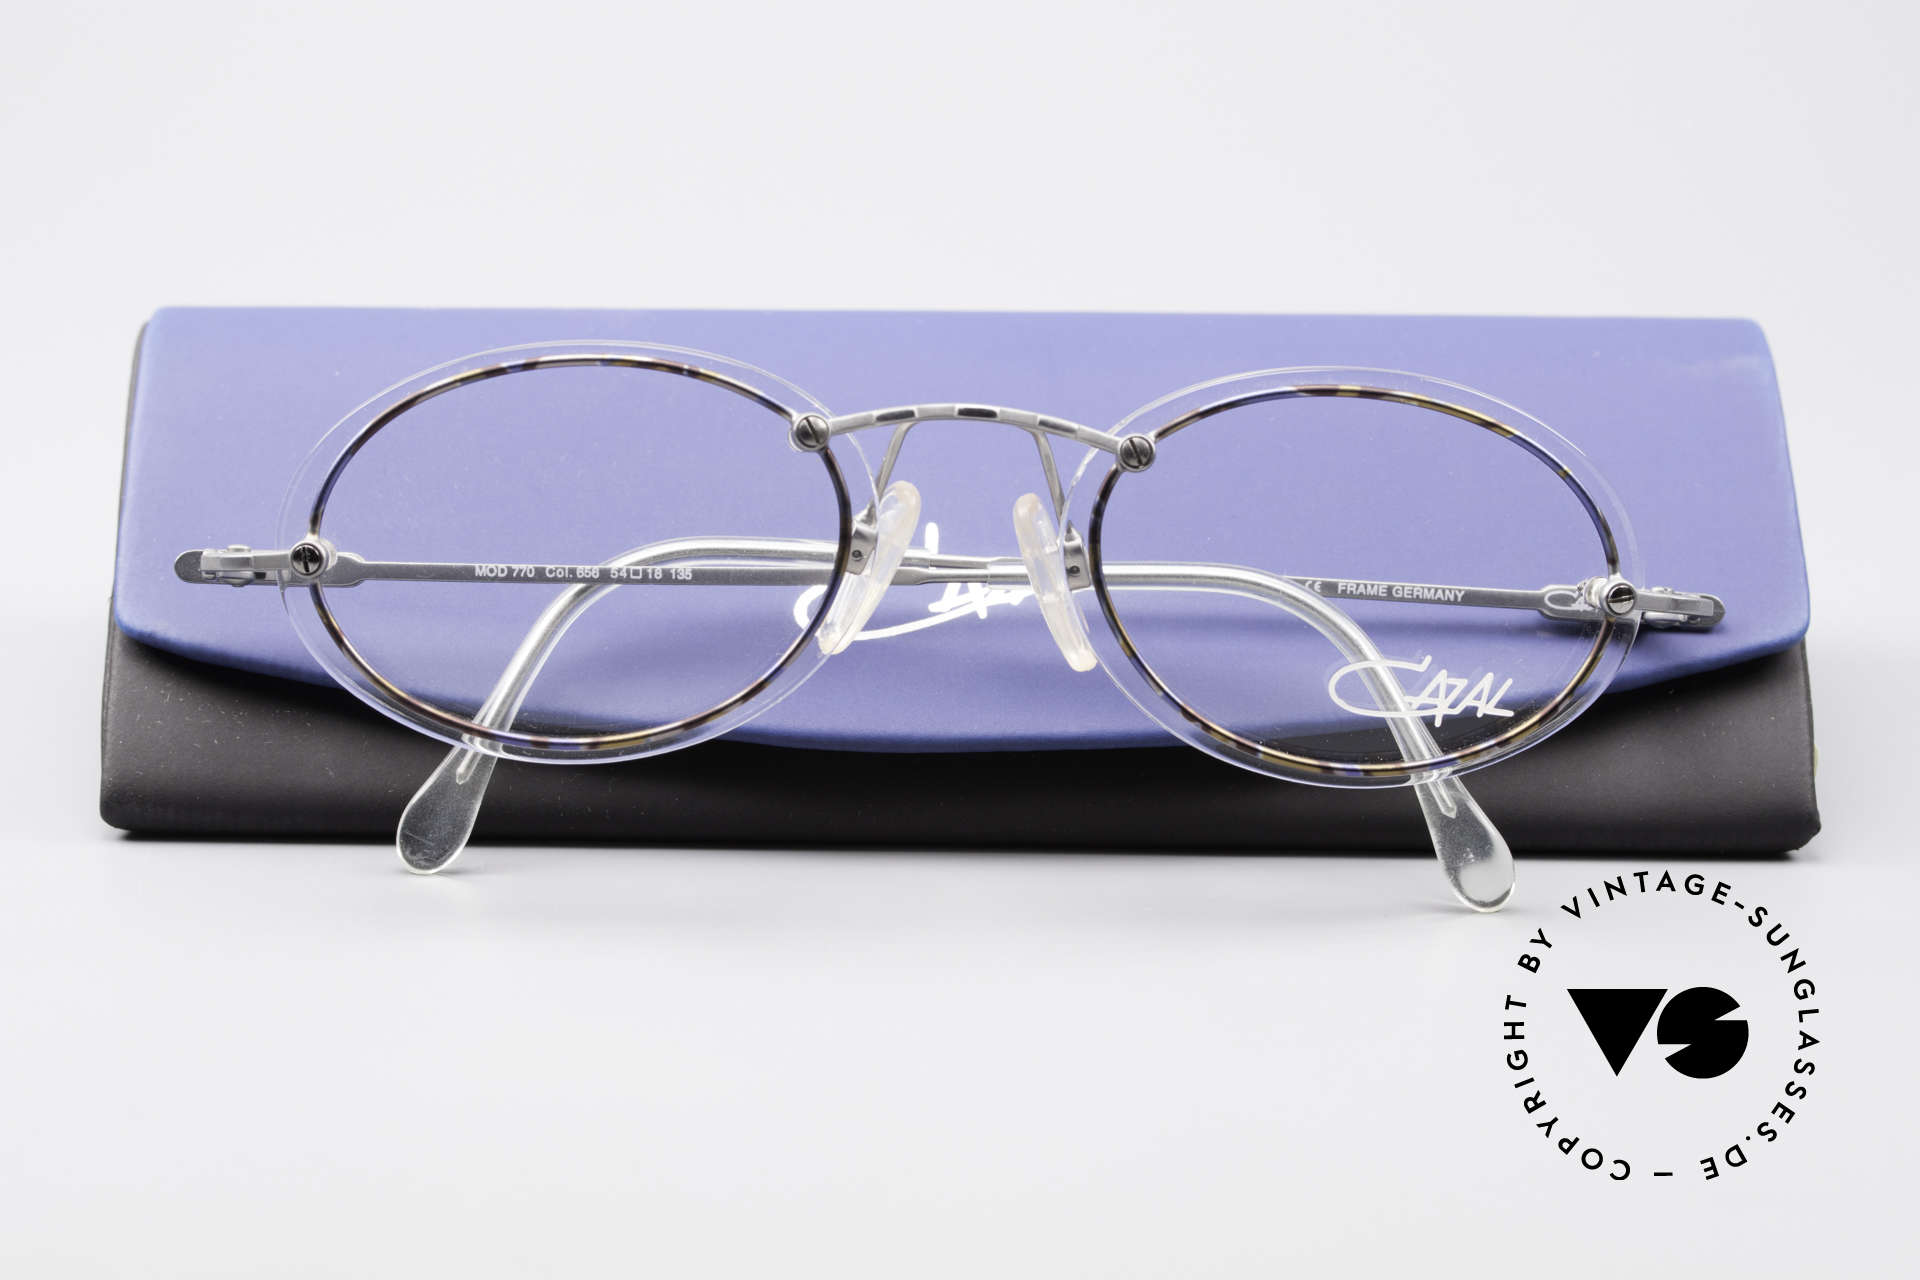 Cazal 770 Oval Vintage Frame No Retro, Size: medium, Made for Men and Women